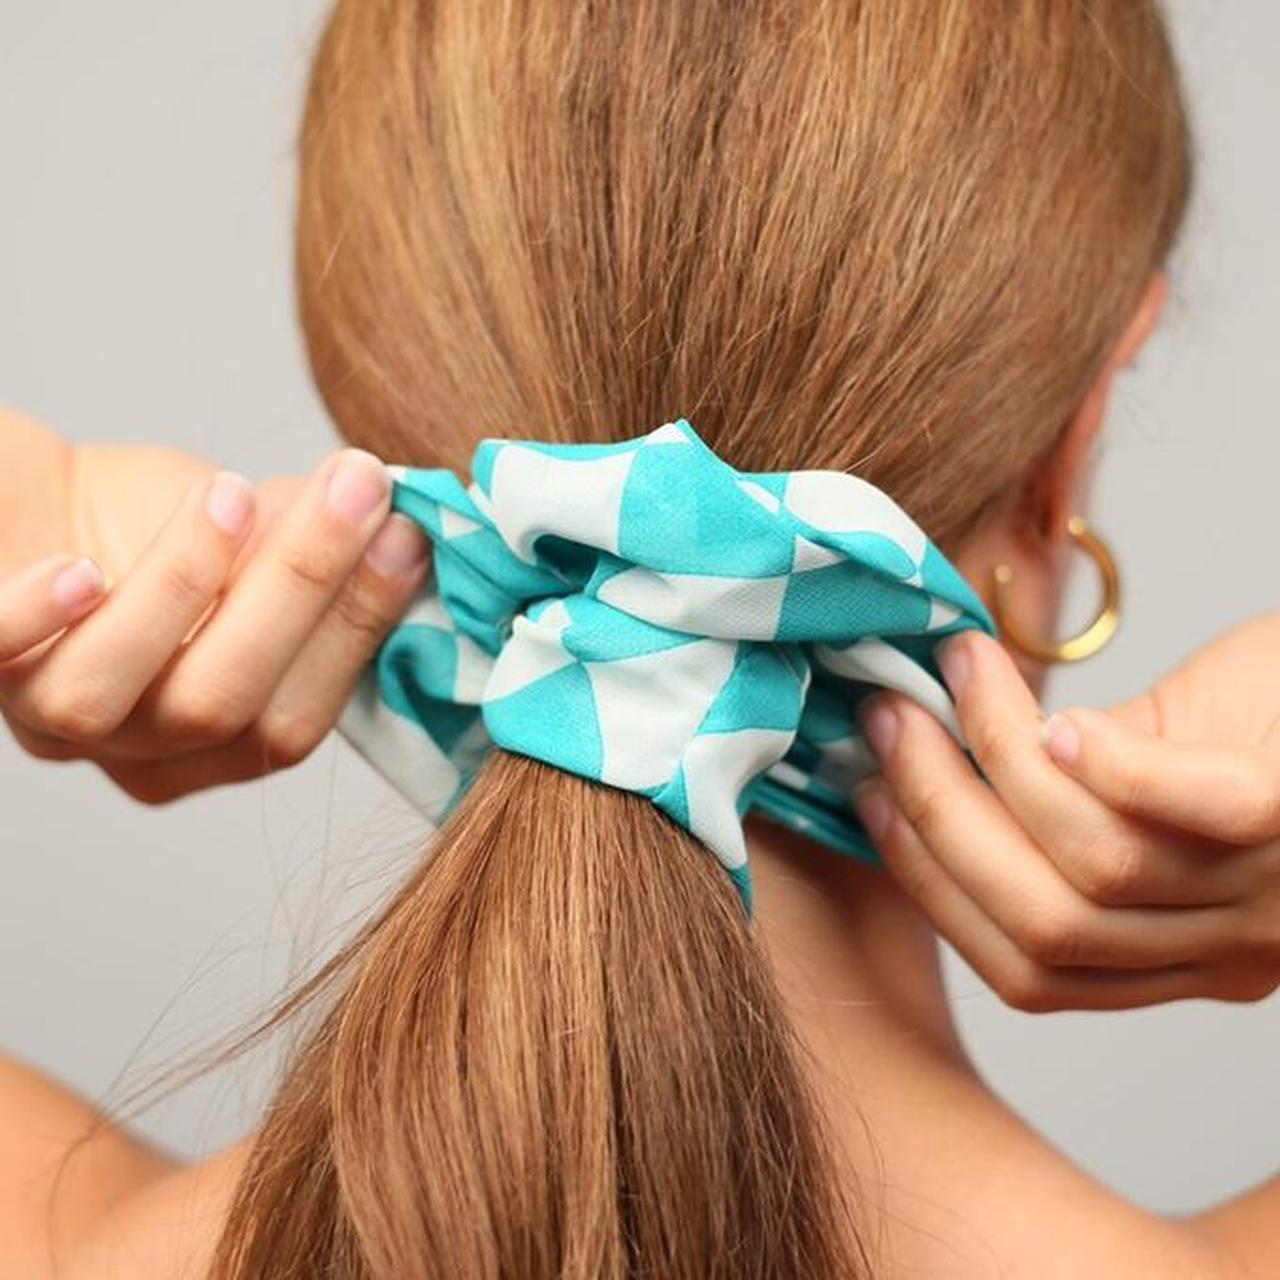 Product Image 1 - Chiffon scrunchie in green/white checkered